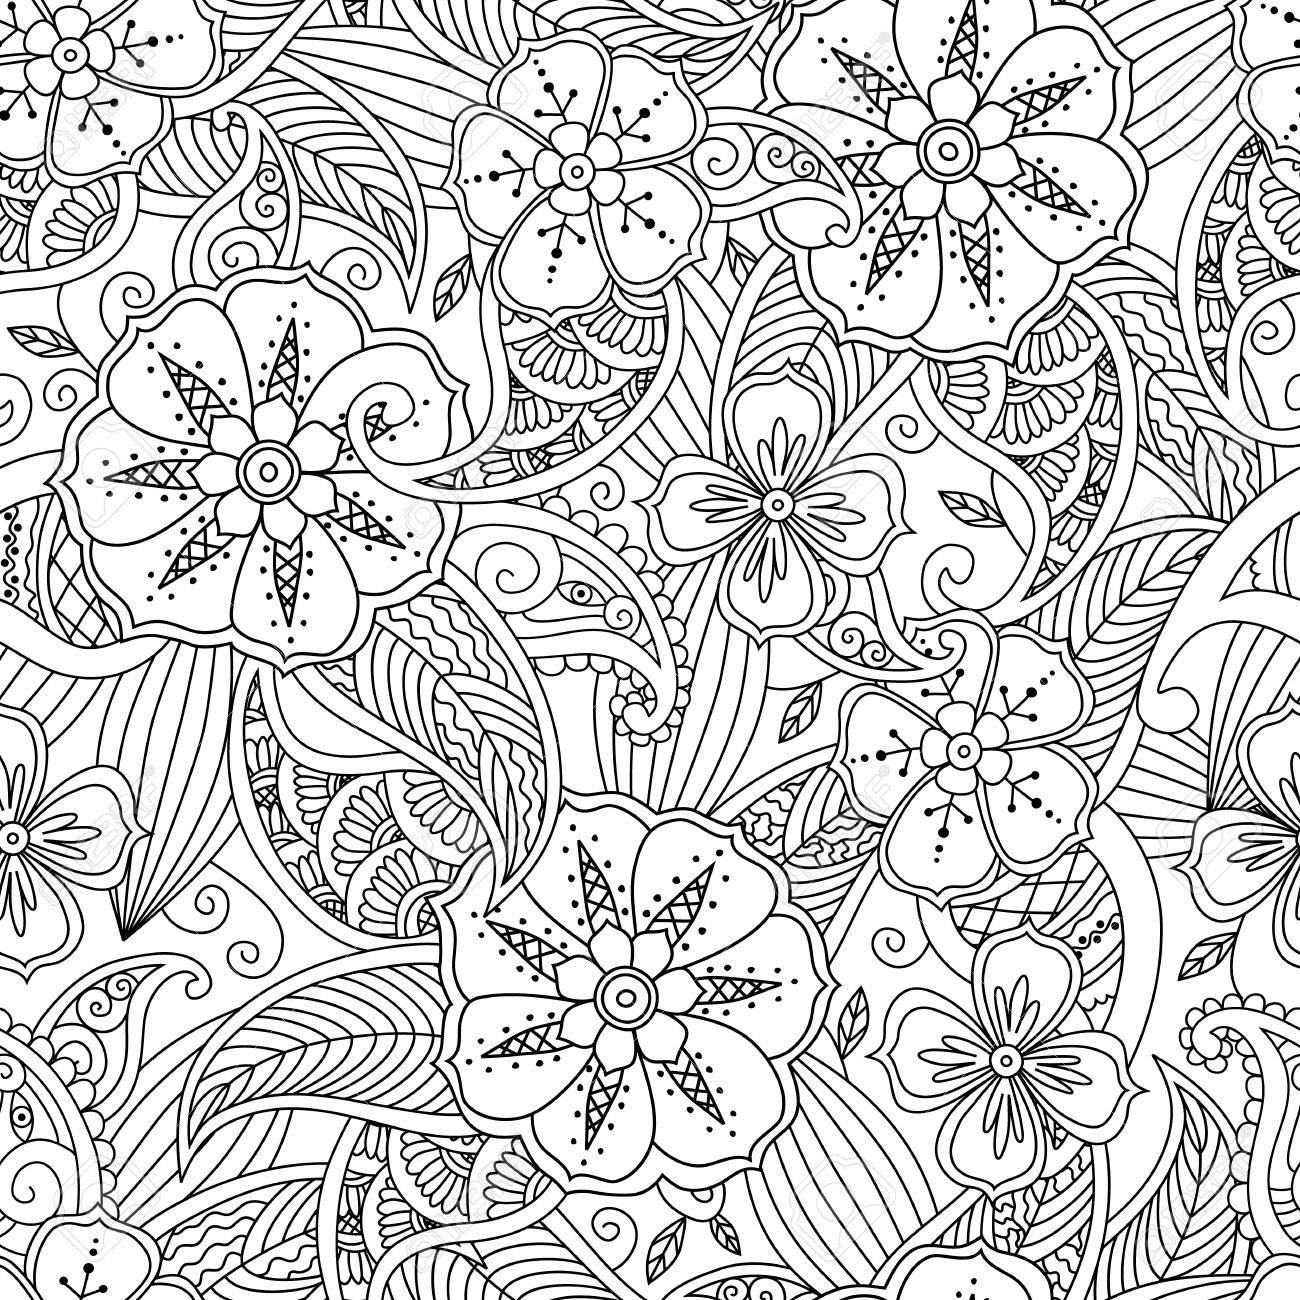 Monochrome Seamless Pattern With Flowers And Leafs In Doodle Mendie Style Coloring Page Beautiful